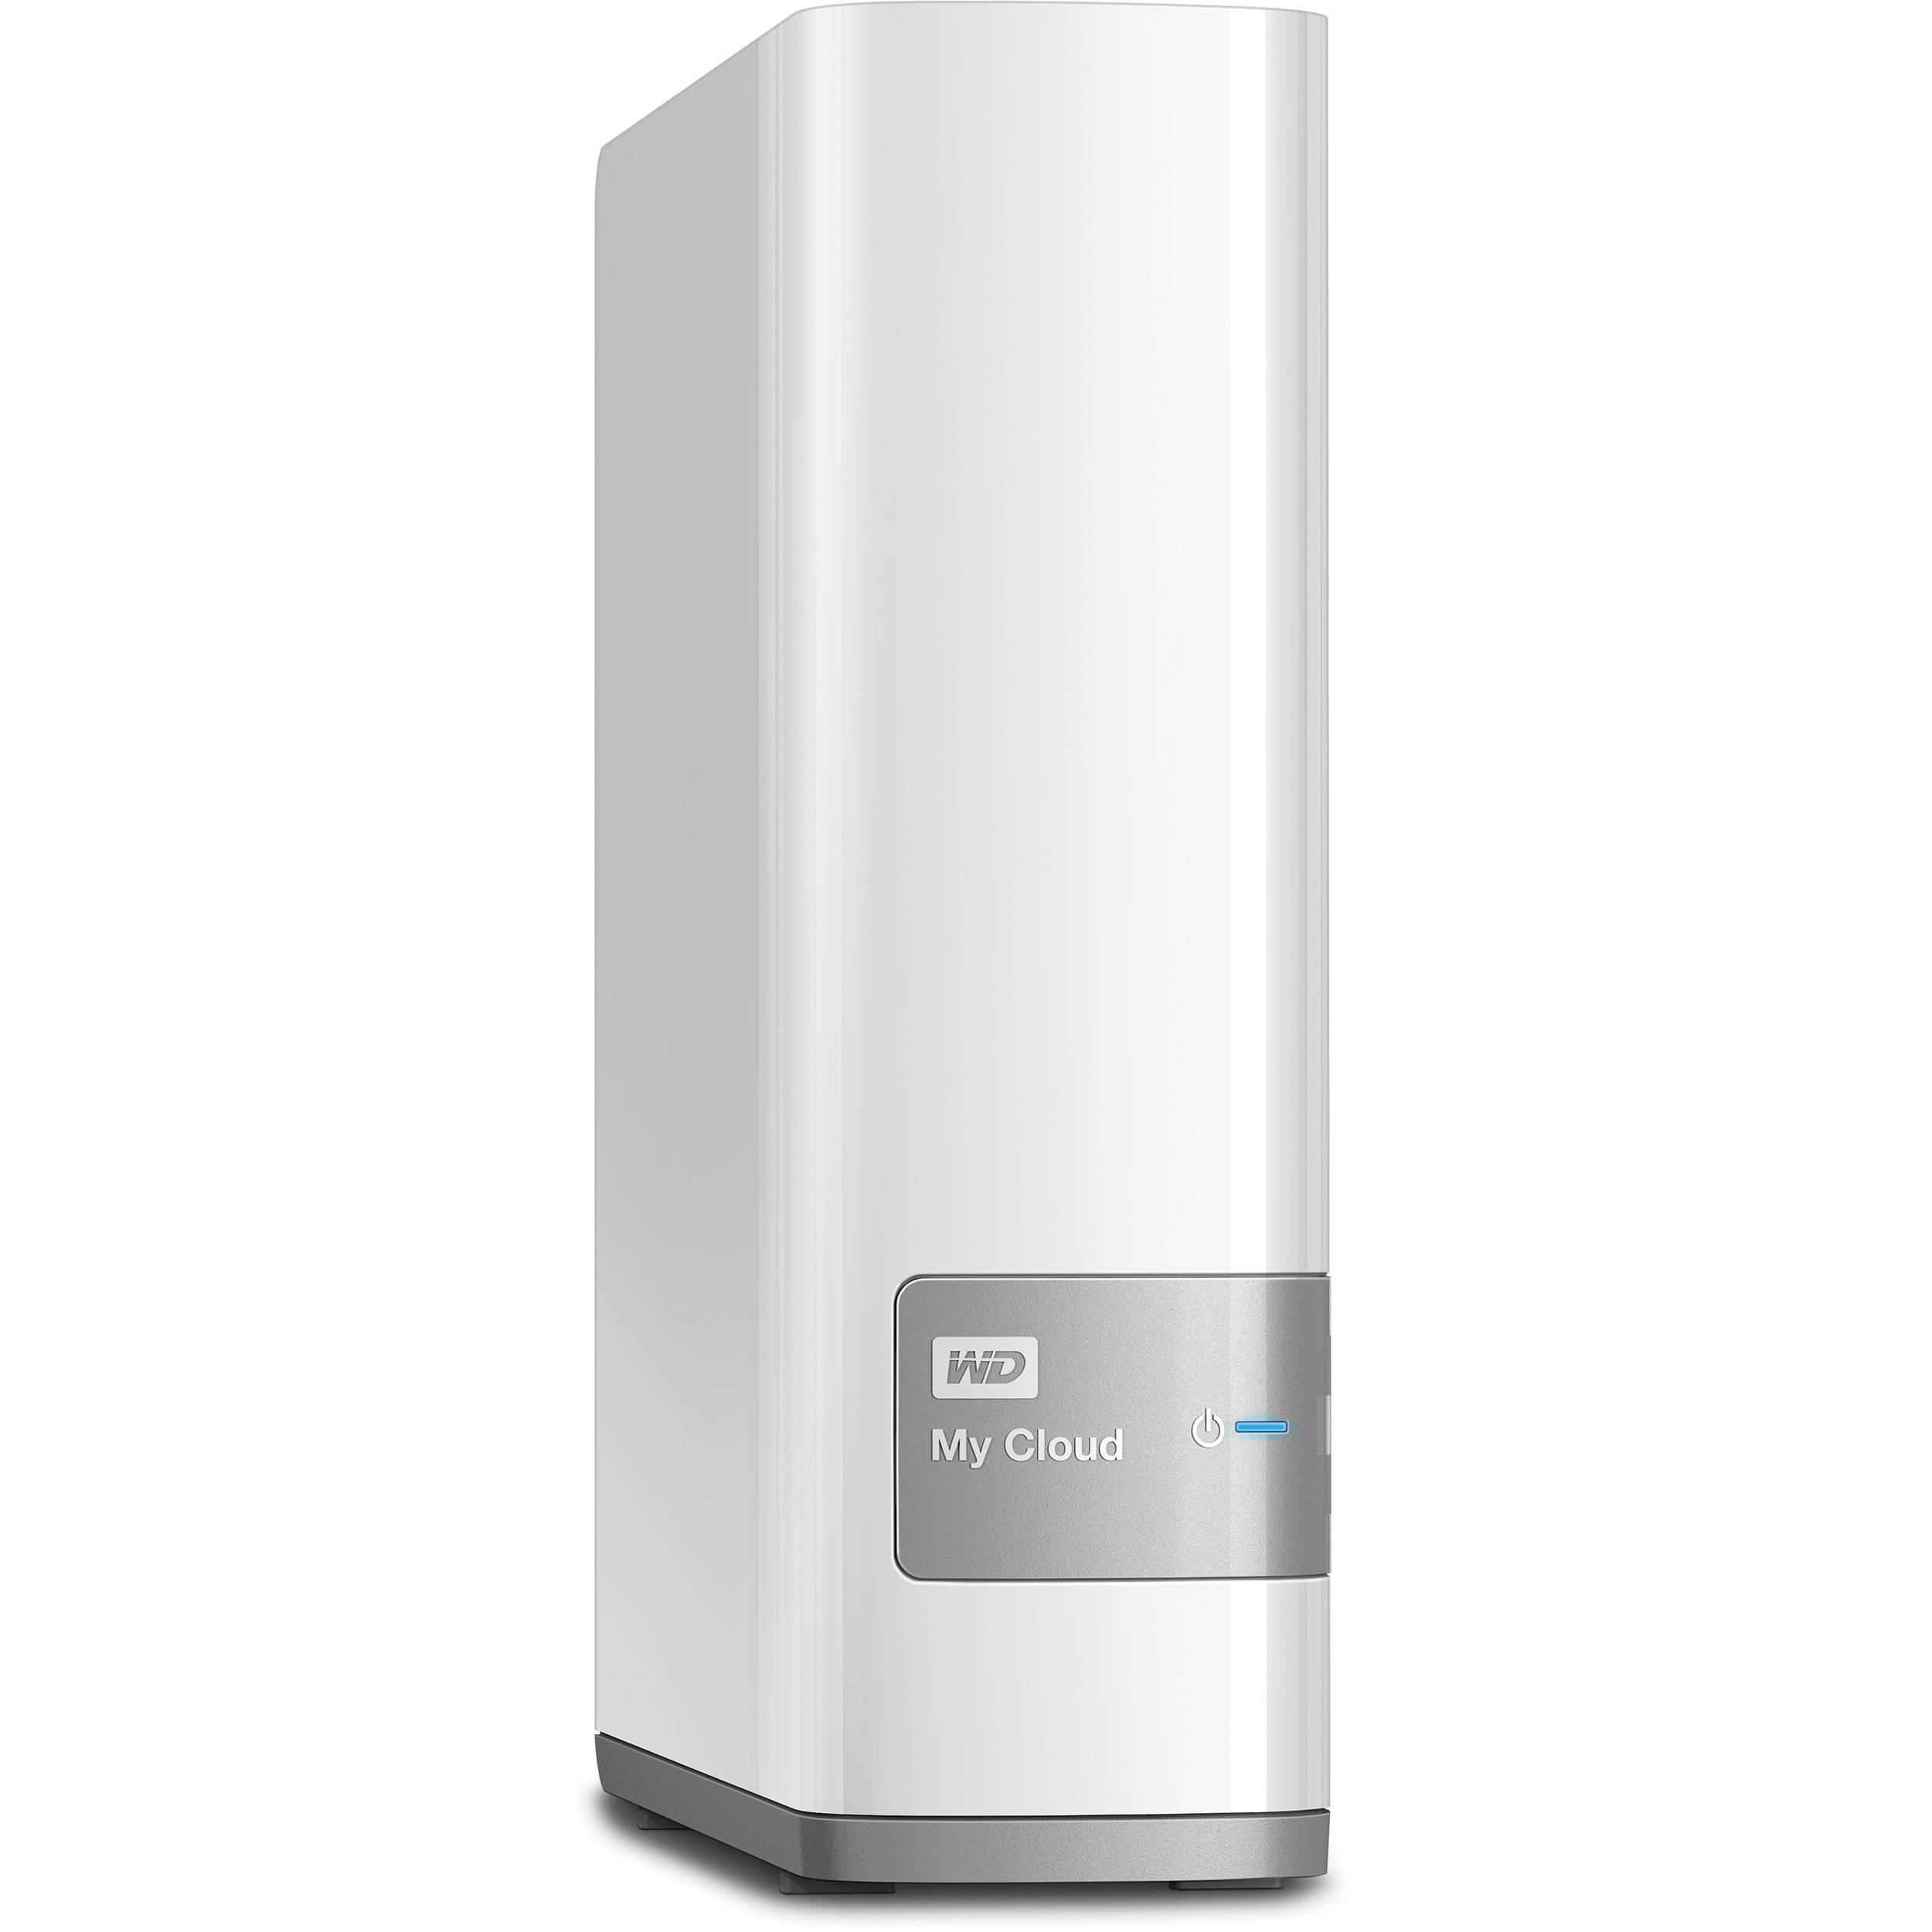 Wd cloud storage costco 2014